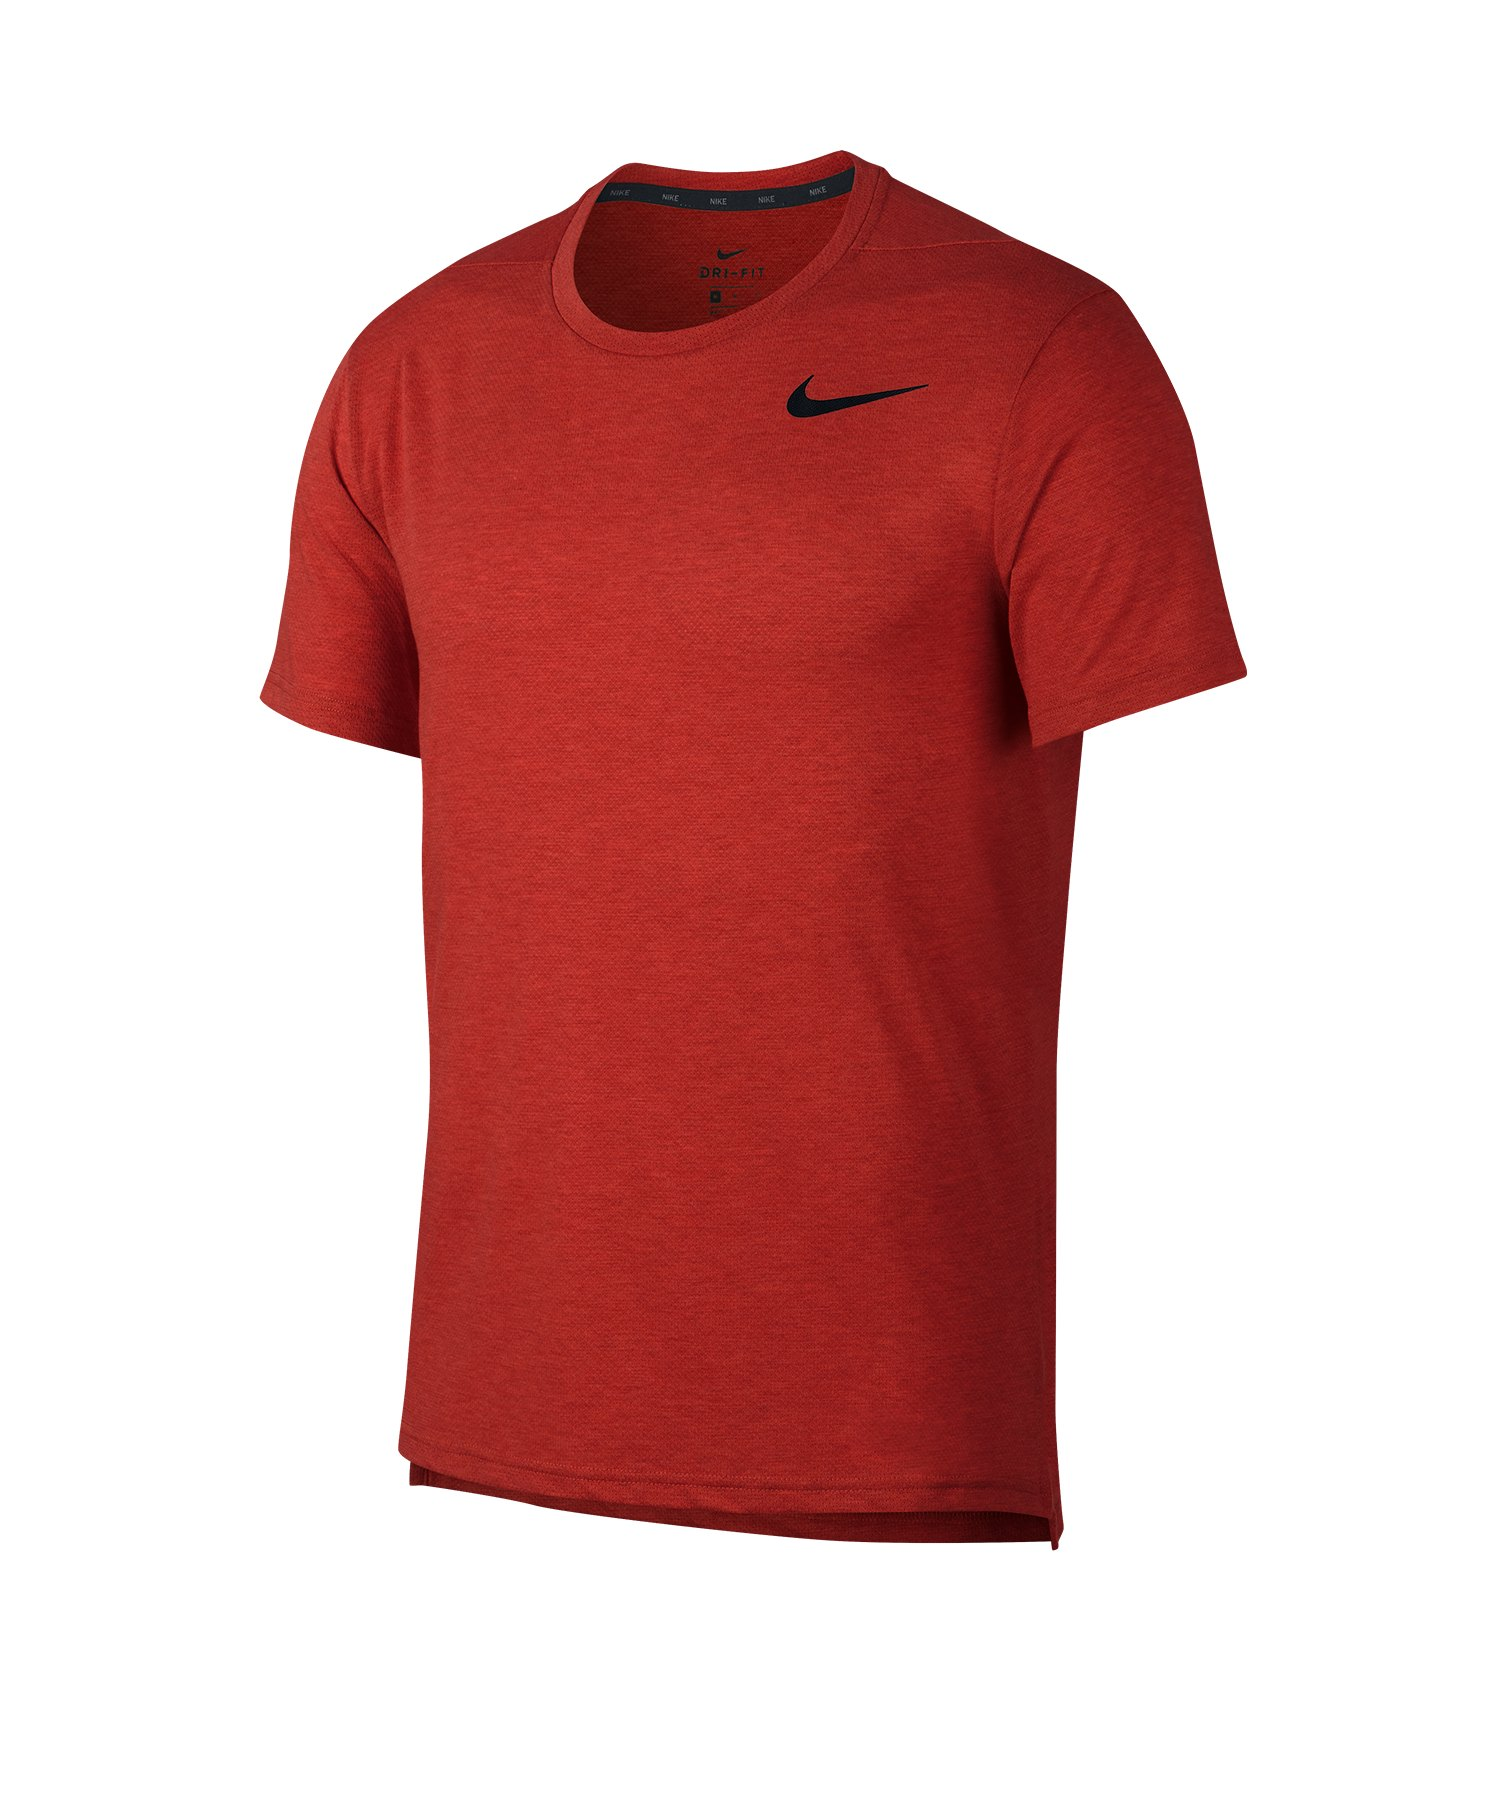 Nike Breathe Dri-FIT T-Shirt Rot F622 - rot